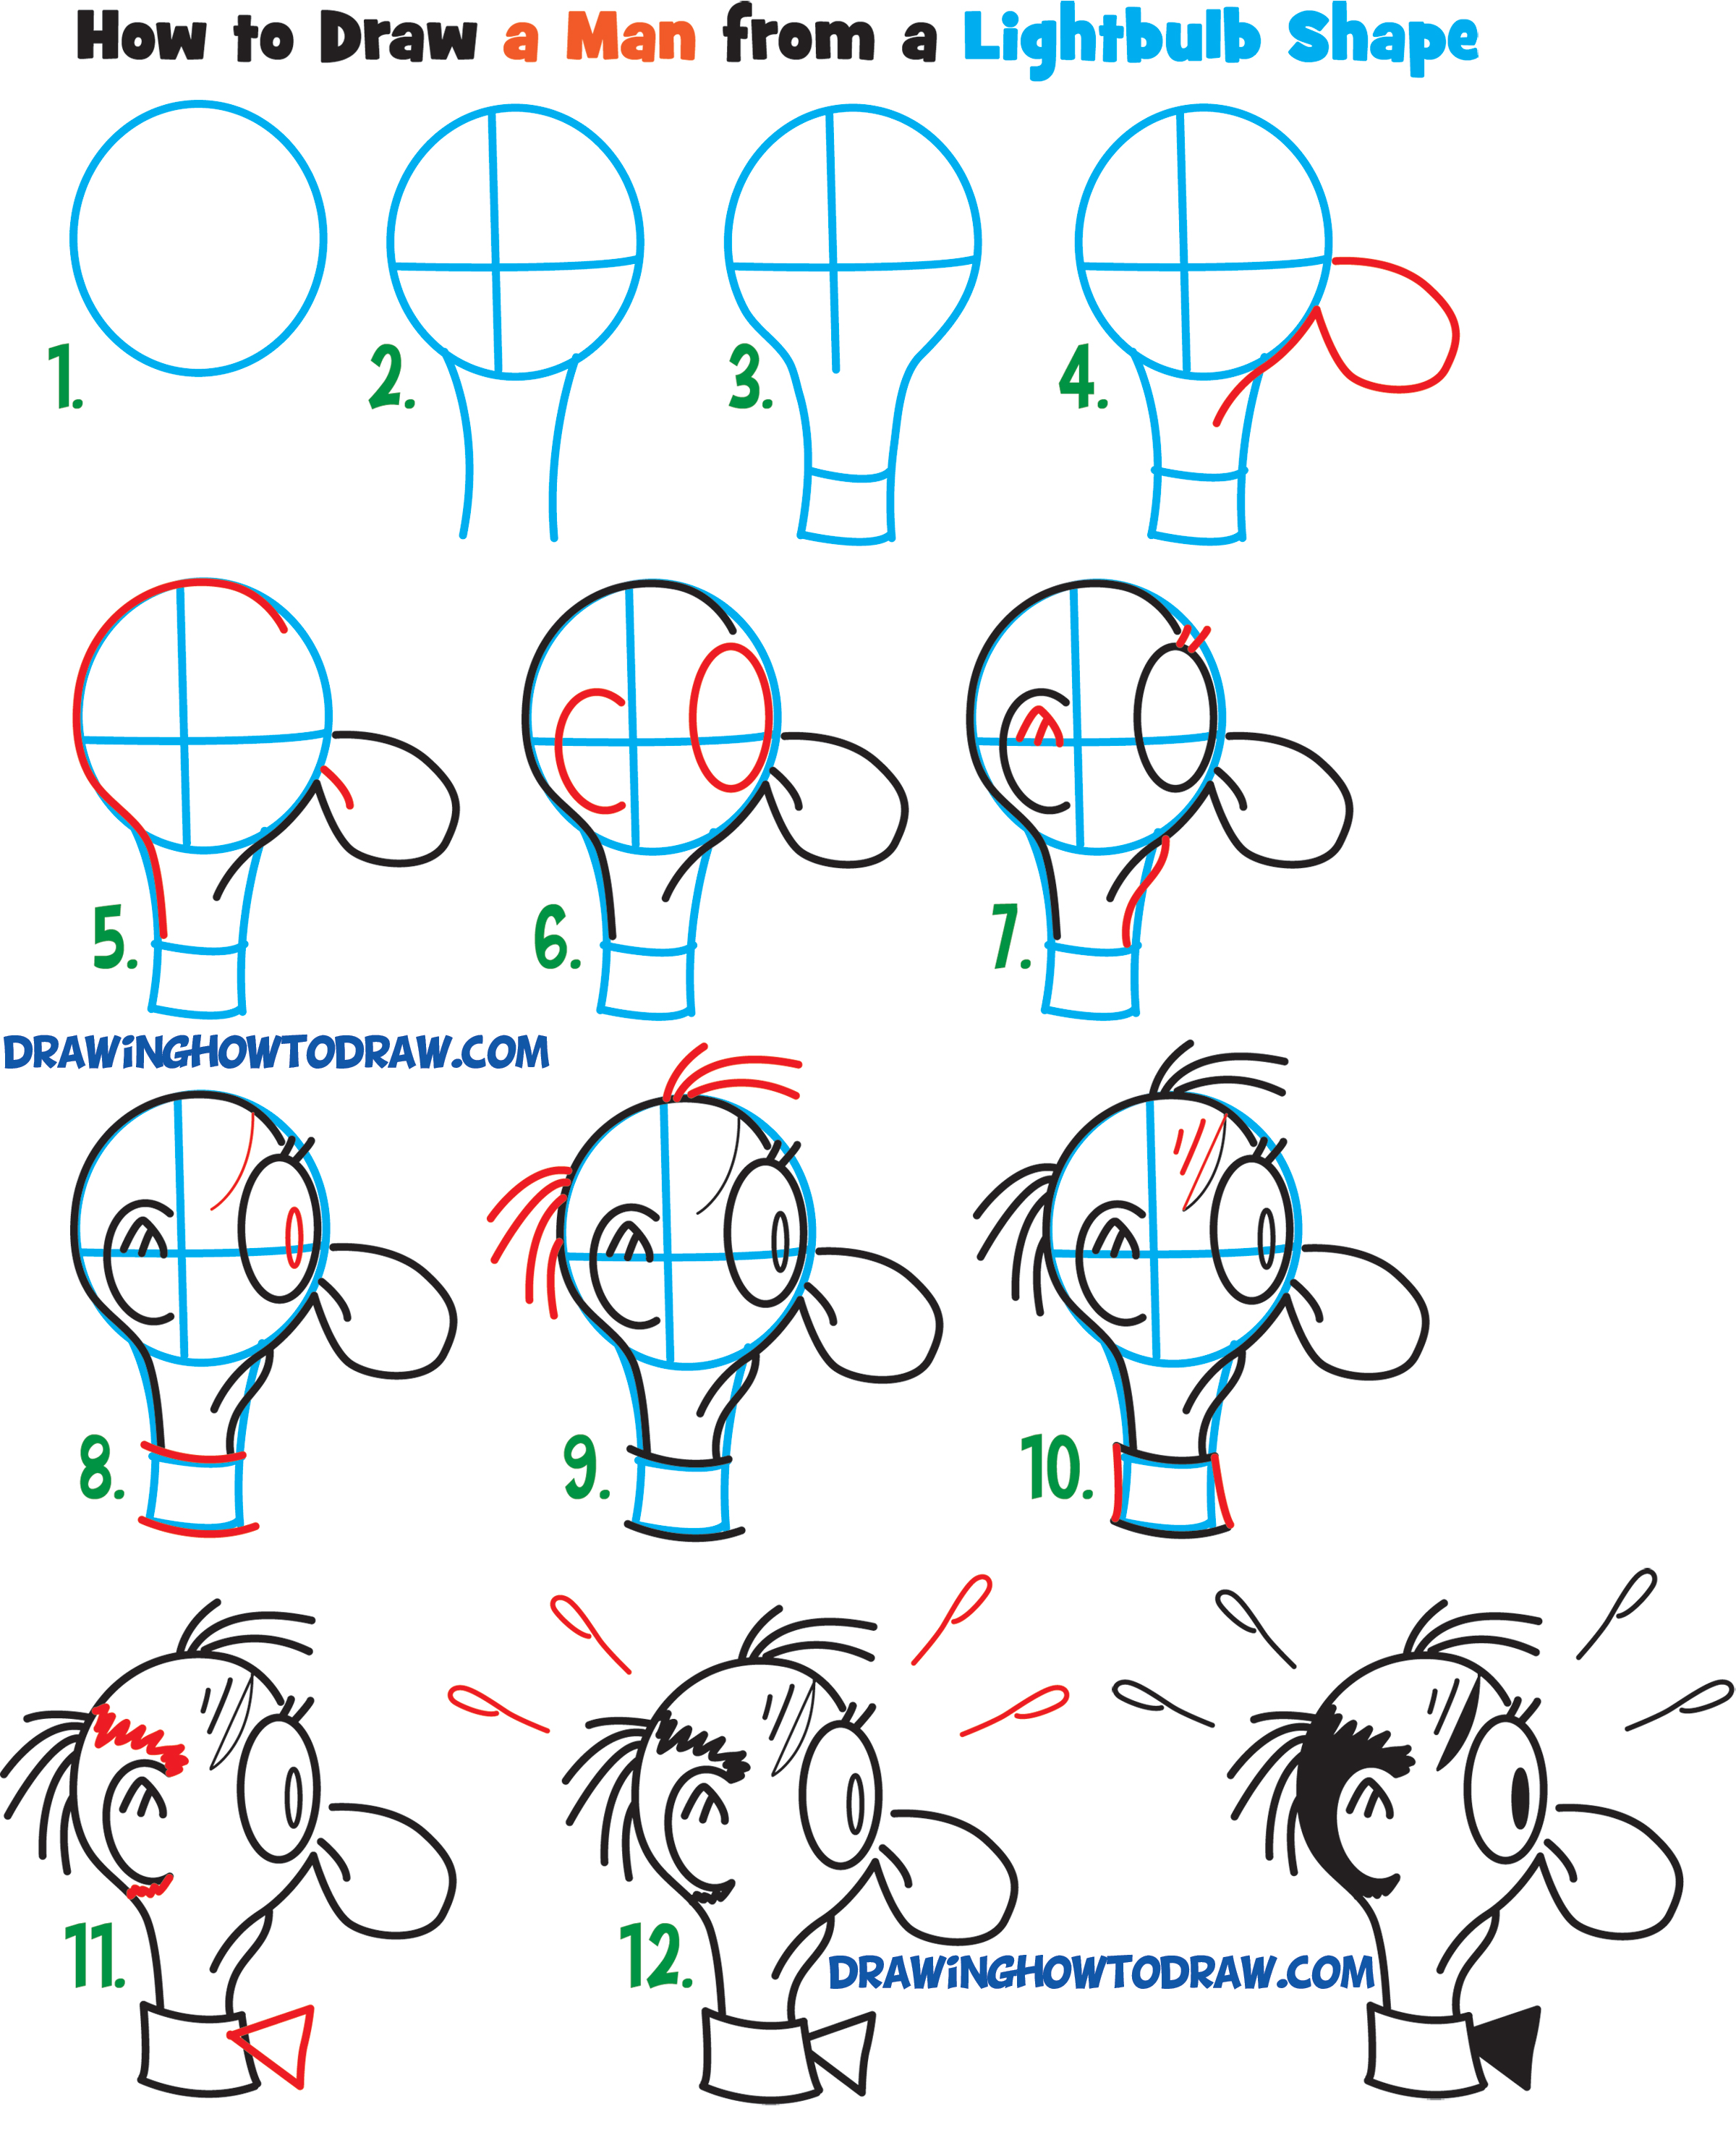 Tutorial #4: Draw a Cartoon Man's Face from the Side / Profile View from a Light Bulb